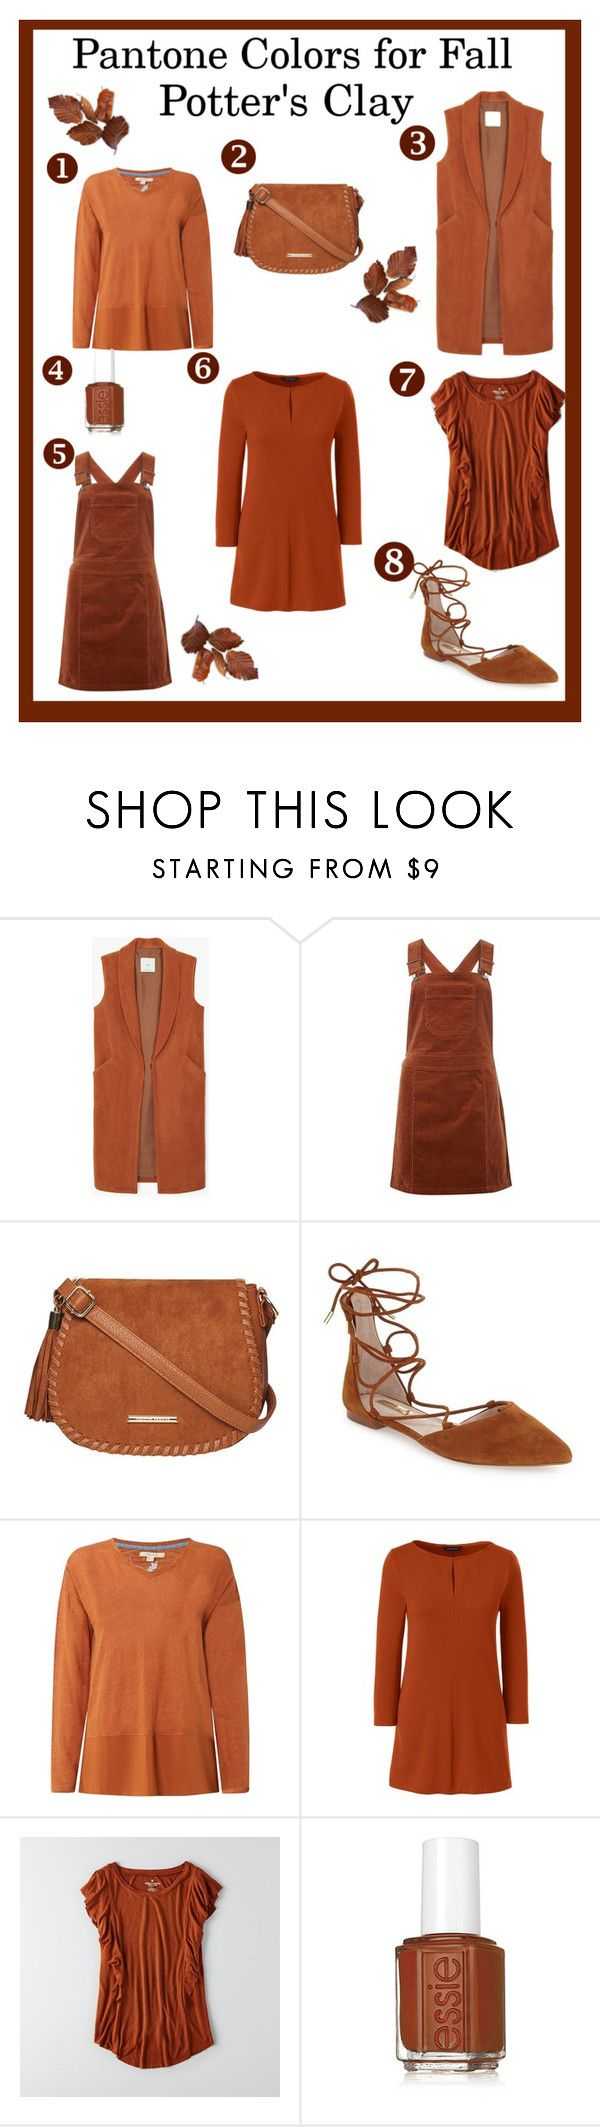 """""""Pantone Color For Fall: Potter's Clay"""" by lanaebond ❤ liked on Polyvore featuring MANGO, Dorothy Perkins, Louise et Cie, White Stuff, Lands' End, American Eagle Outfitters and Essie"""